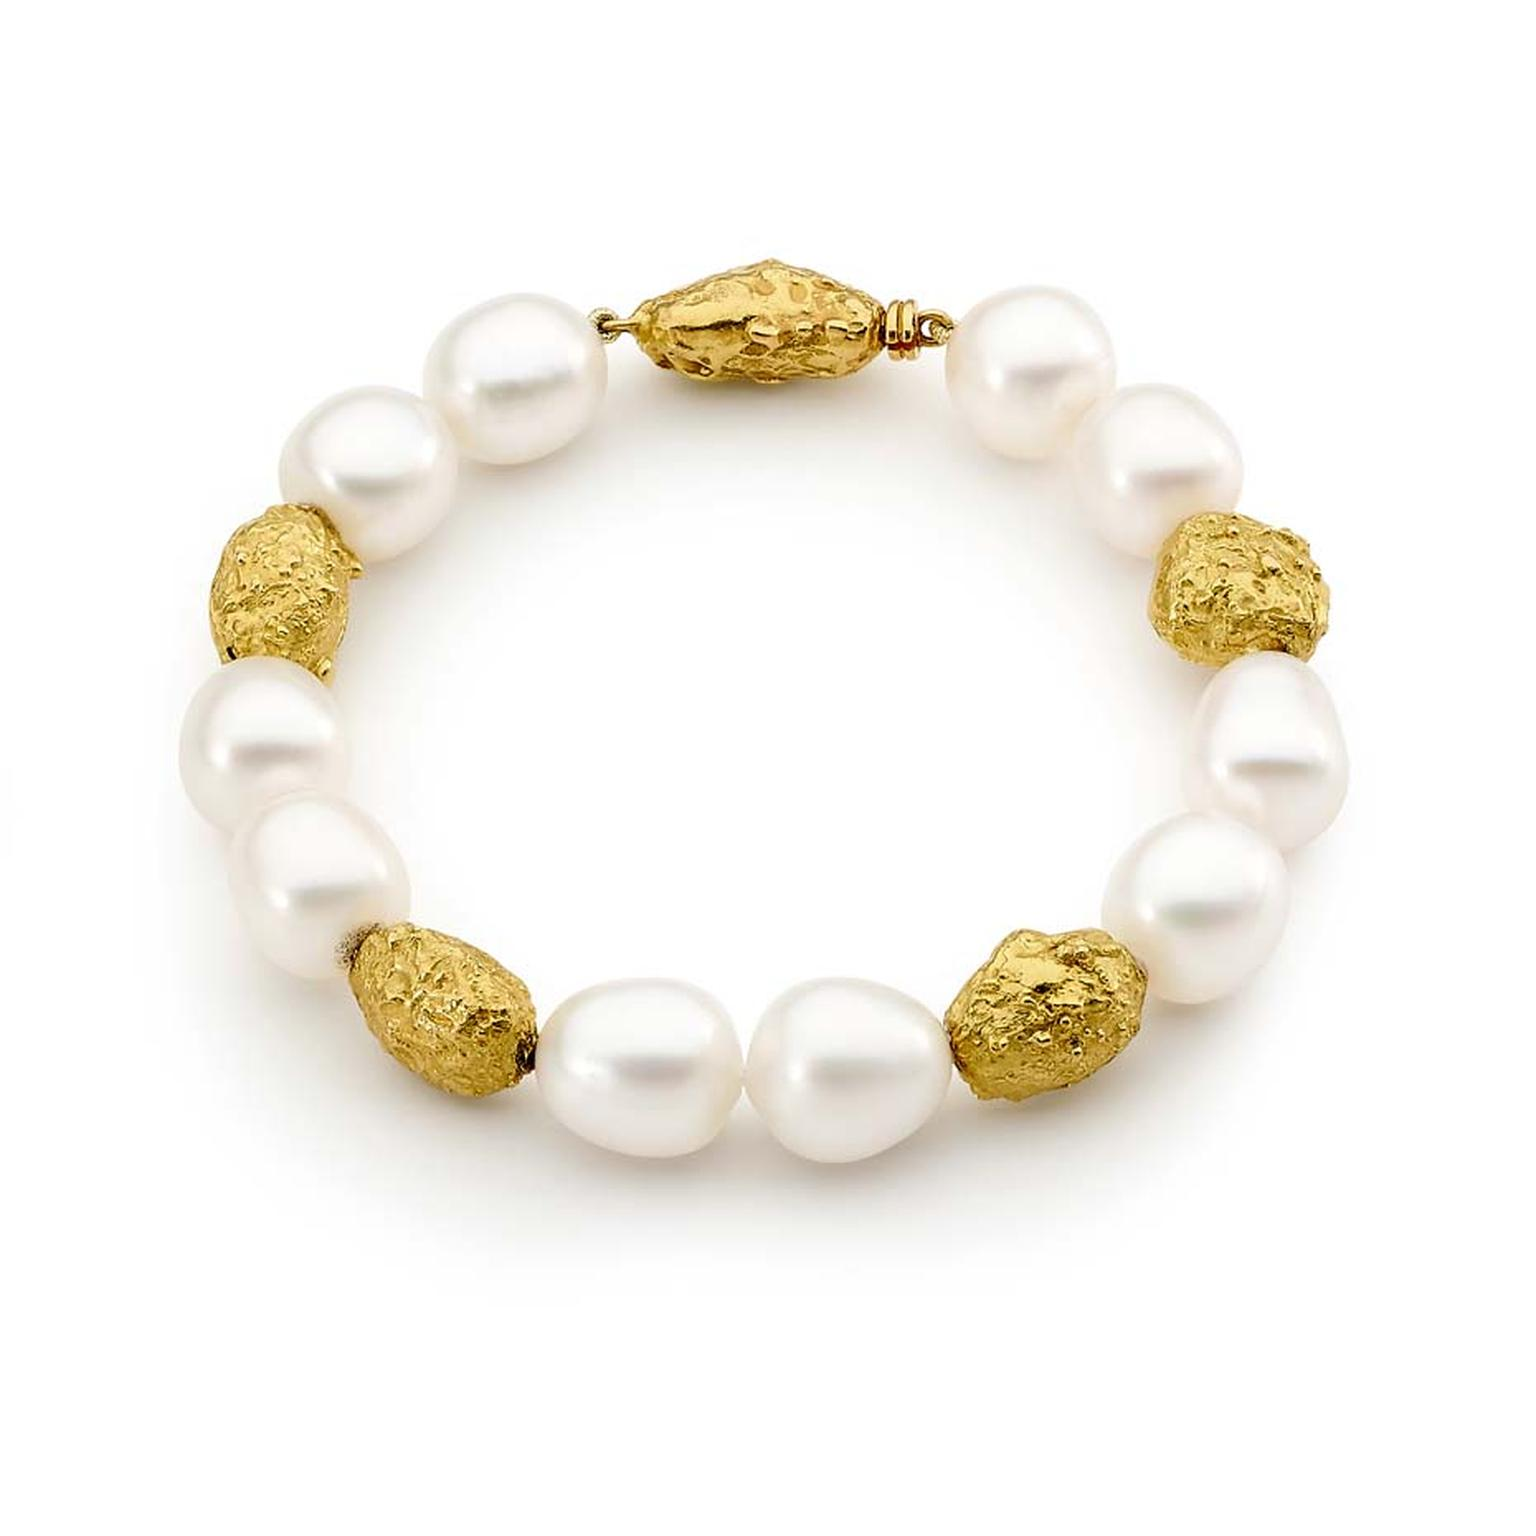 Australian Pearls_Linneys_yellow gold Australian South Sea pearl bracelet $8,500.jpg